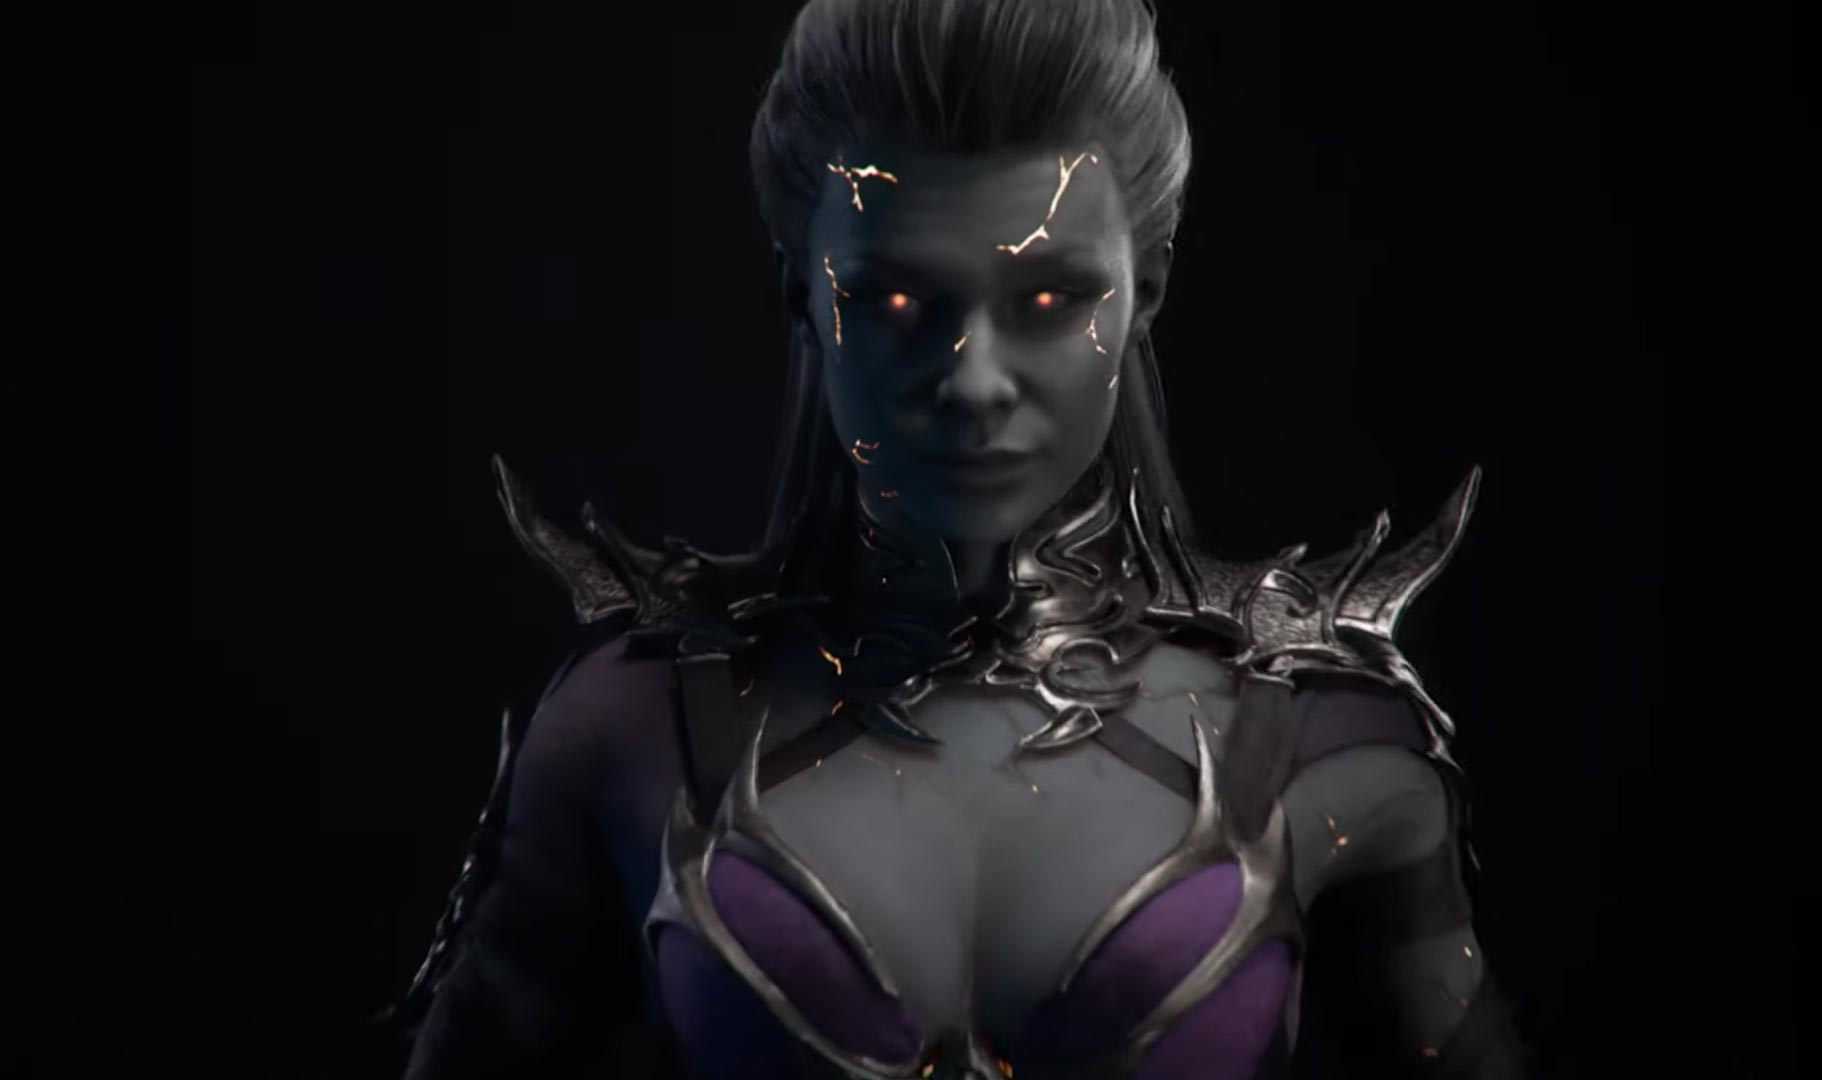 Kombat Pack trailer 2 out of 7 image gallery